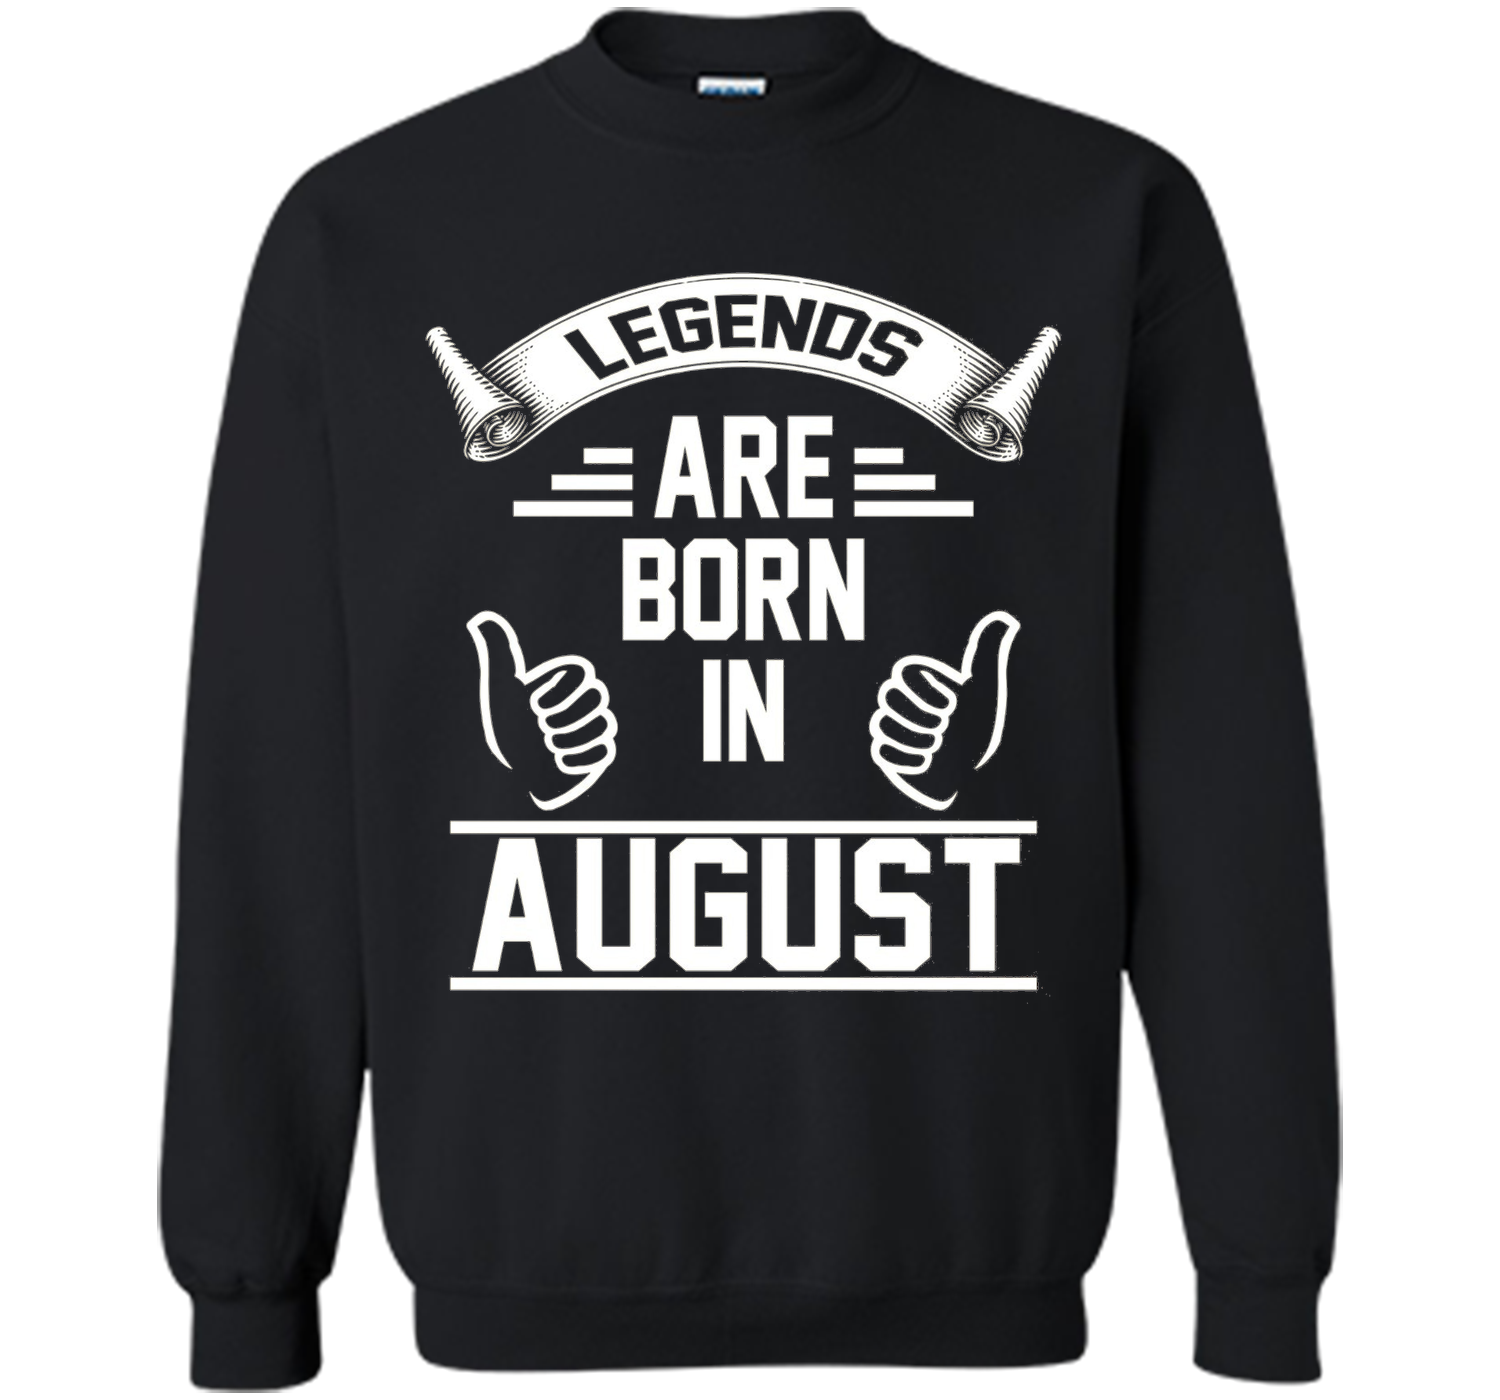 27e2b900 Legends Are Born In August. Funny Birthday T-Shirt For Men. Printed ...